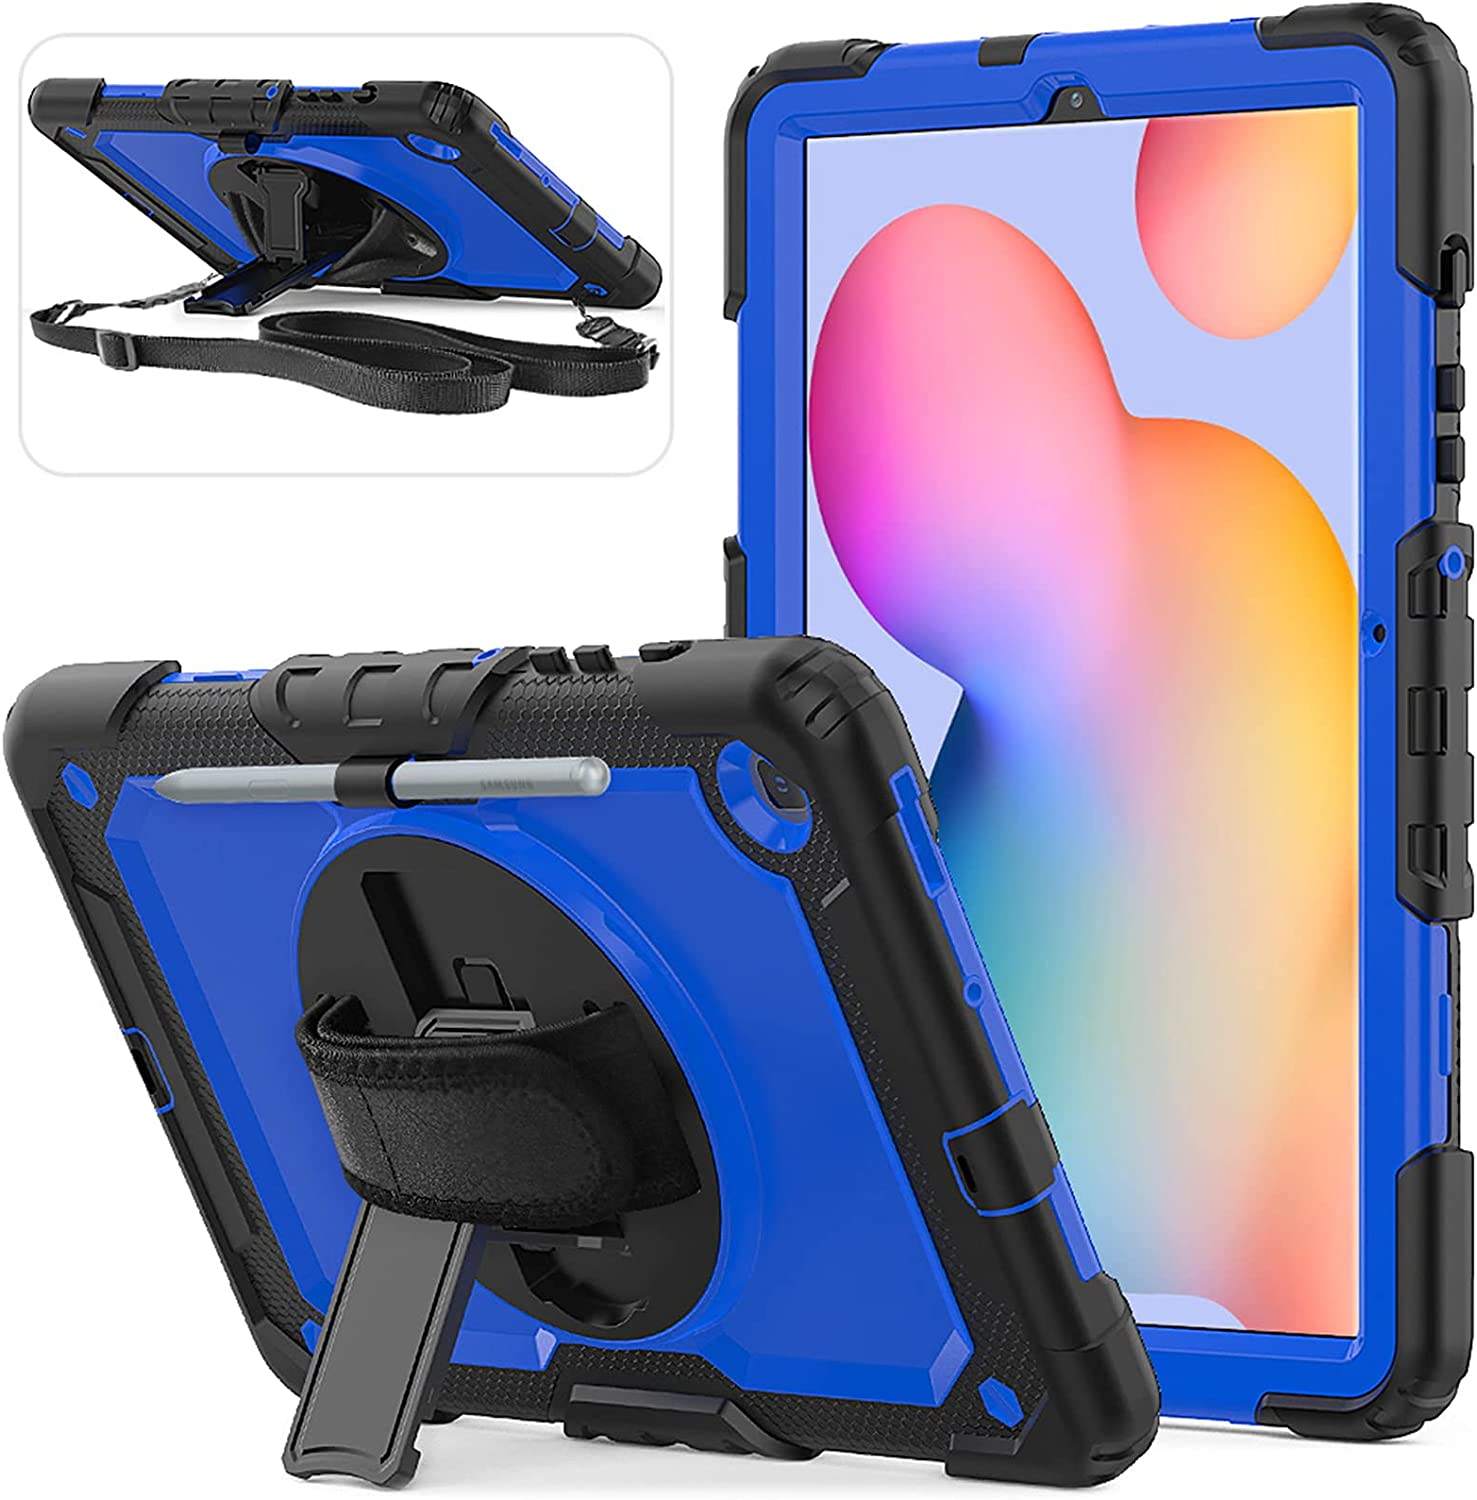 Herize Samsung Galaxy Tab S6 Lite Case SM-P610/P615 with Screen Protector   Three Layer Child Proof Drop Protection Silicon Cover W/ 360° Kickstand Shoulder Strap for Tab S6 Lite 10.4 Inch   Blue